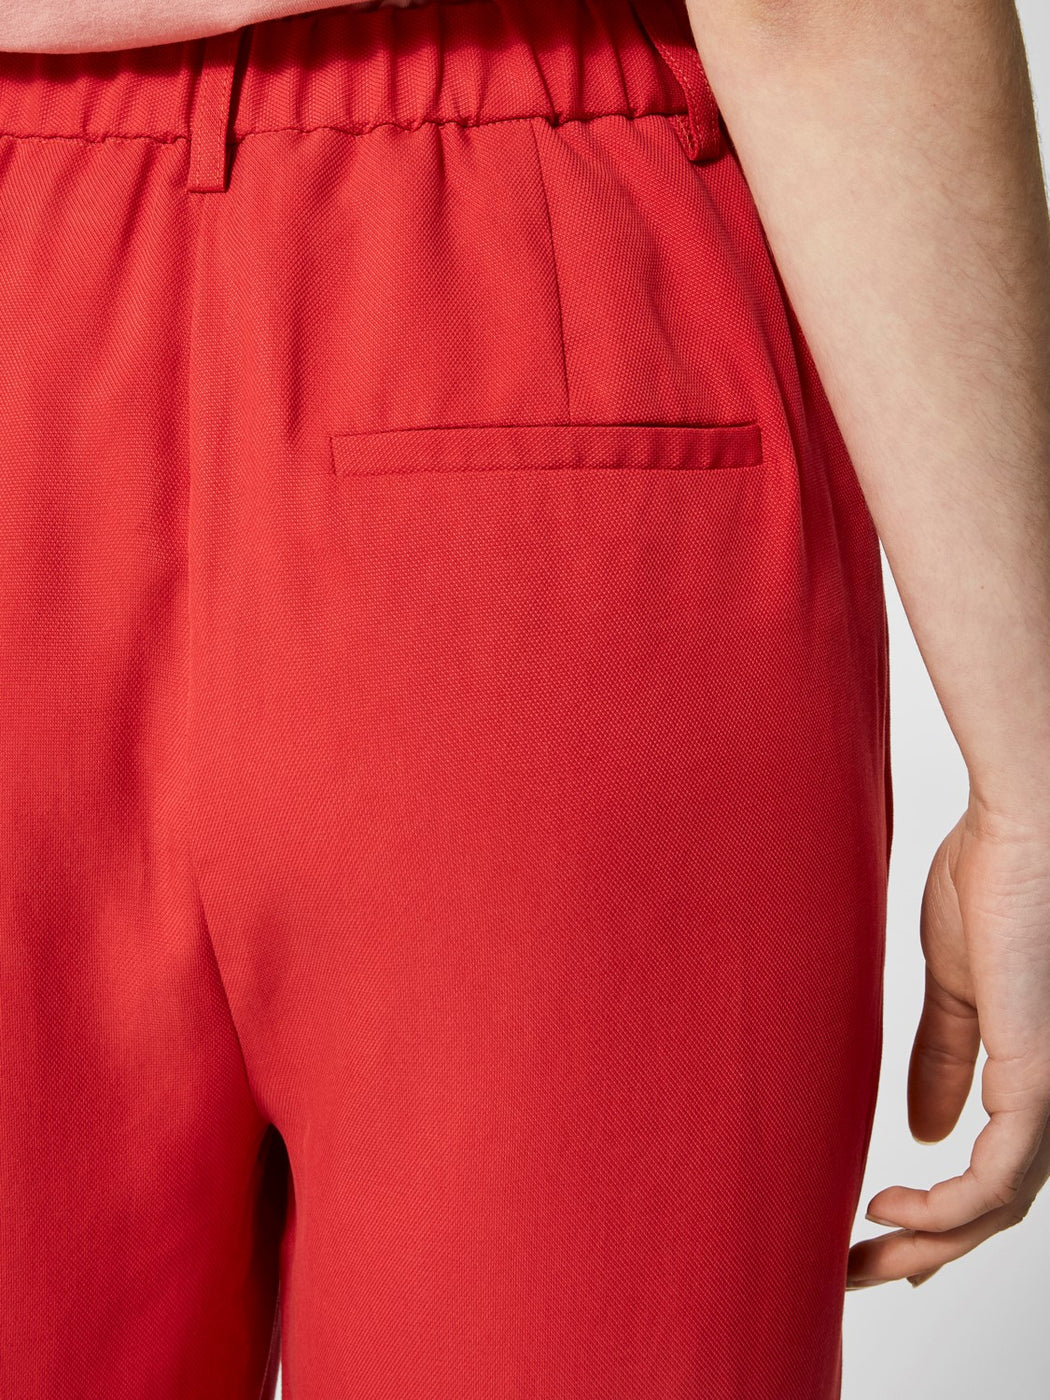 Ravan High Waist Trousers in Lipstick Red